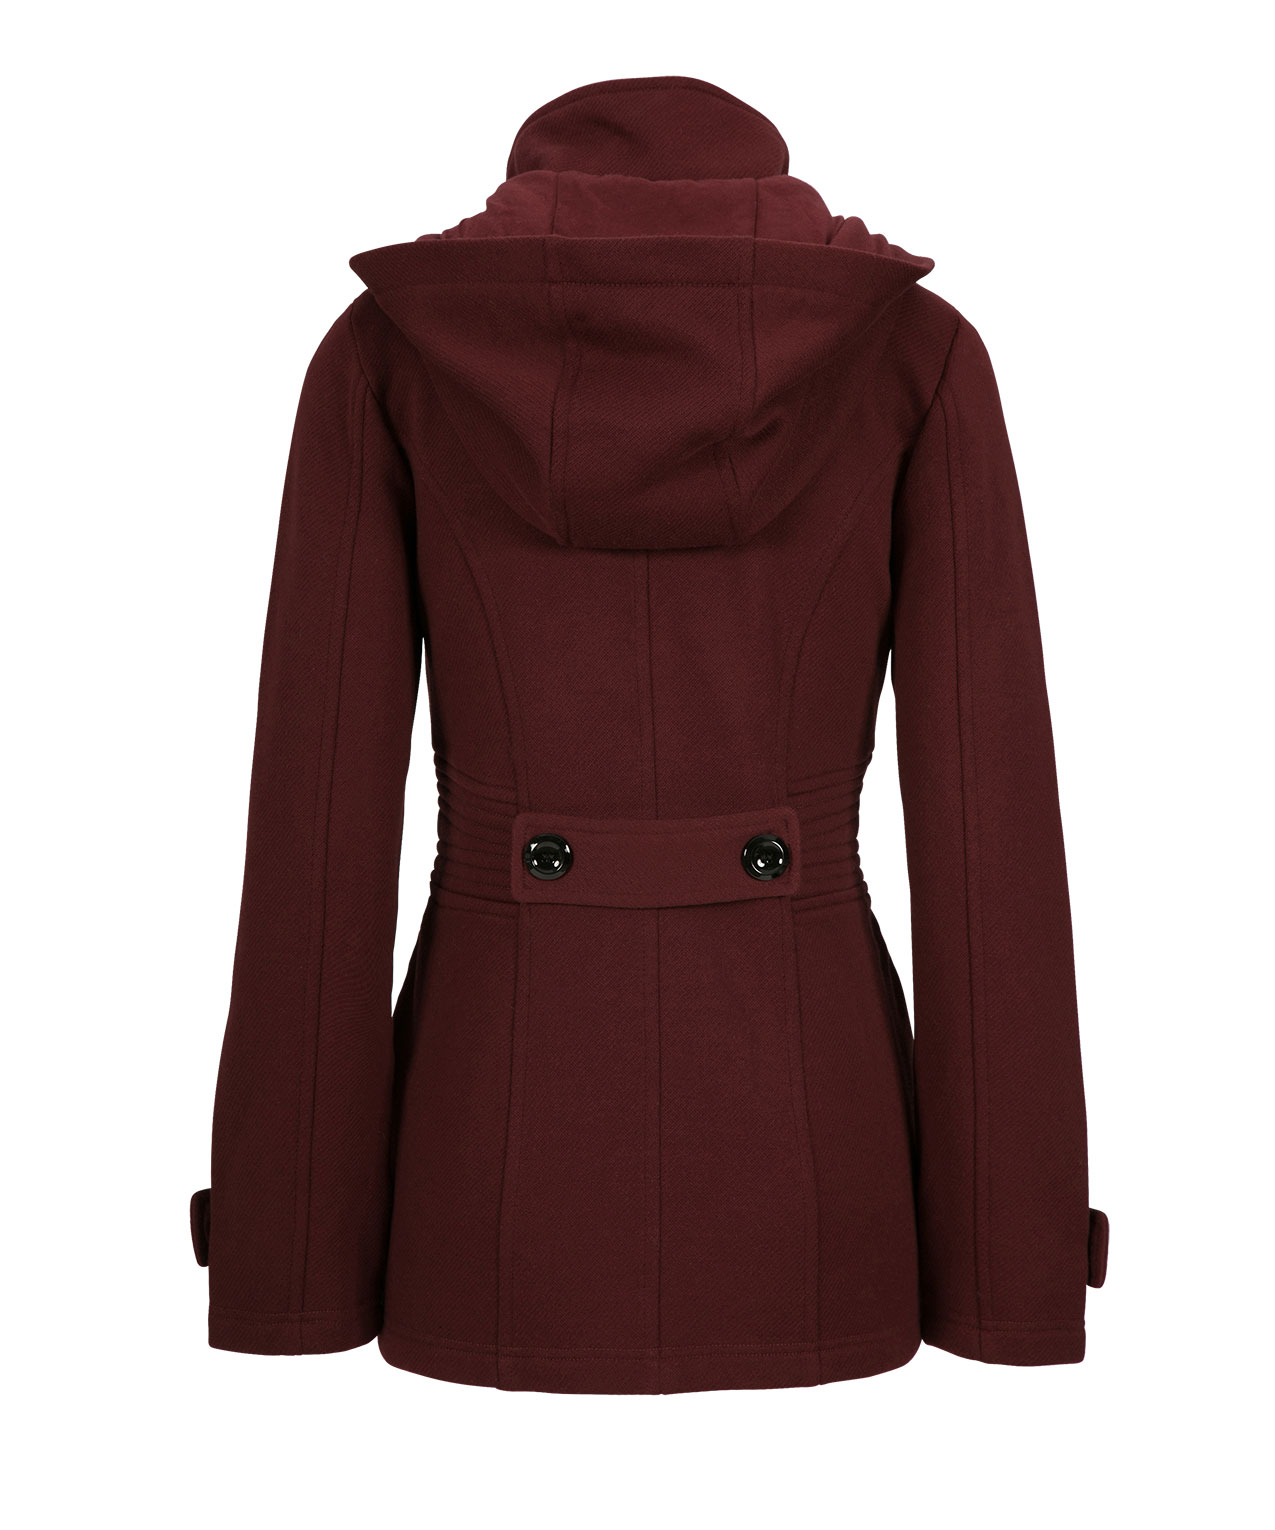 October 18, Toggle coats are one of those cold-weather staples that, along with sweater vests and Duck boots, instantly make you feel like some kind of fall catalog distrib-ah3euse9.tk and preppy.